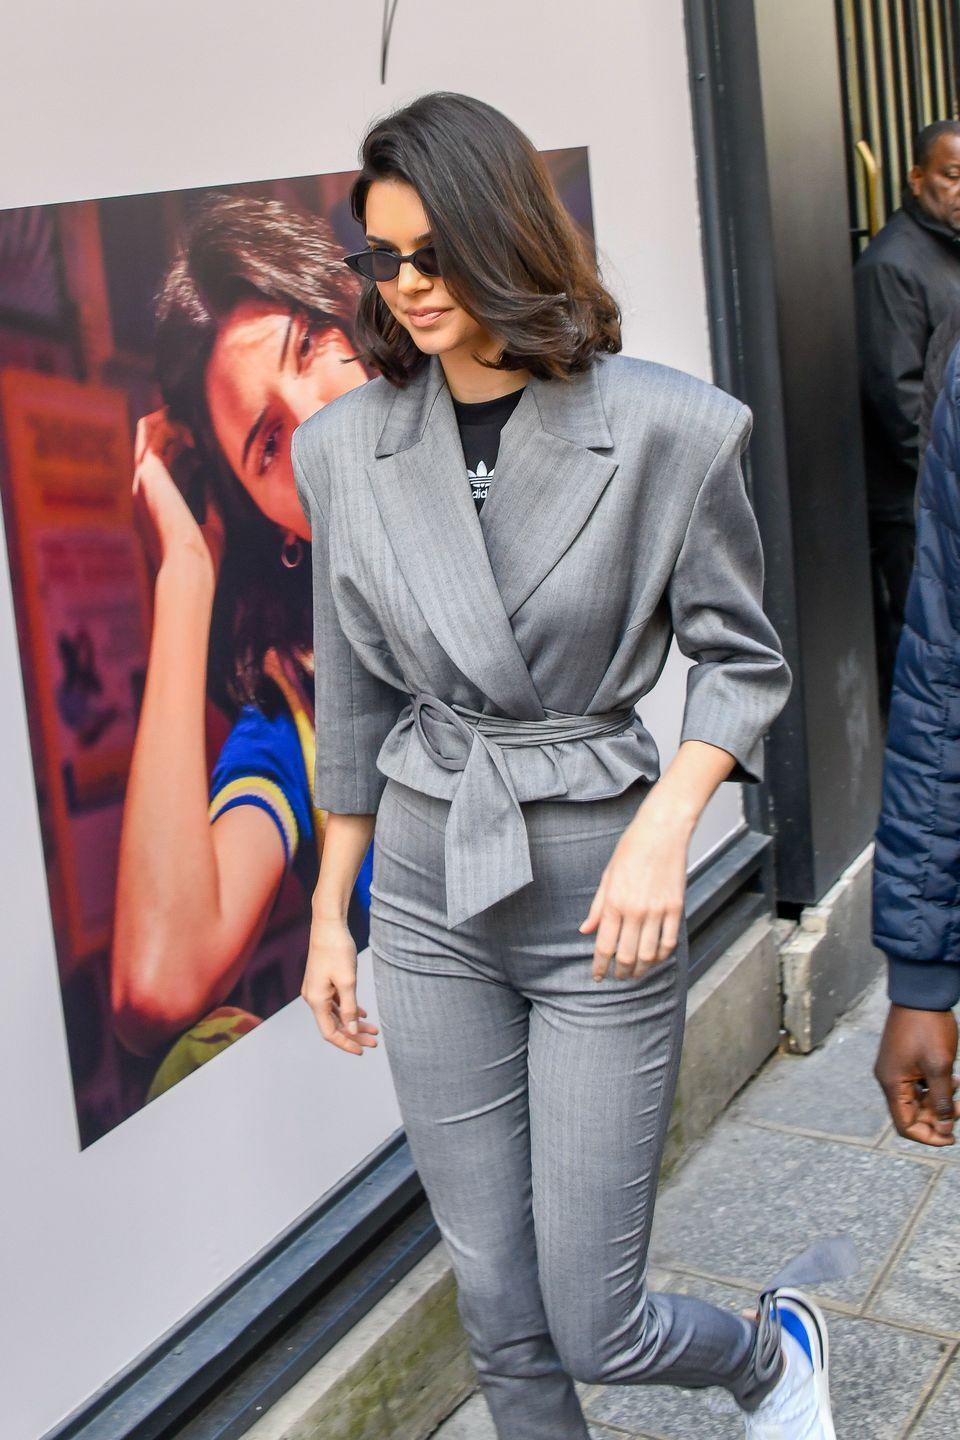 <p>To celebrate the launch of Adidas Originals Arkyn, #GirlBoss Kendall showed up to the event in Paris in this tailored Carmen March suit.</p>